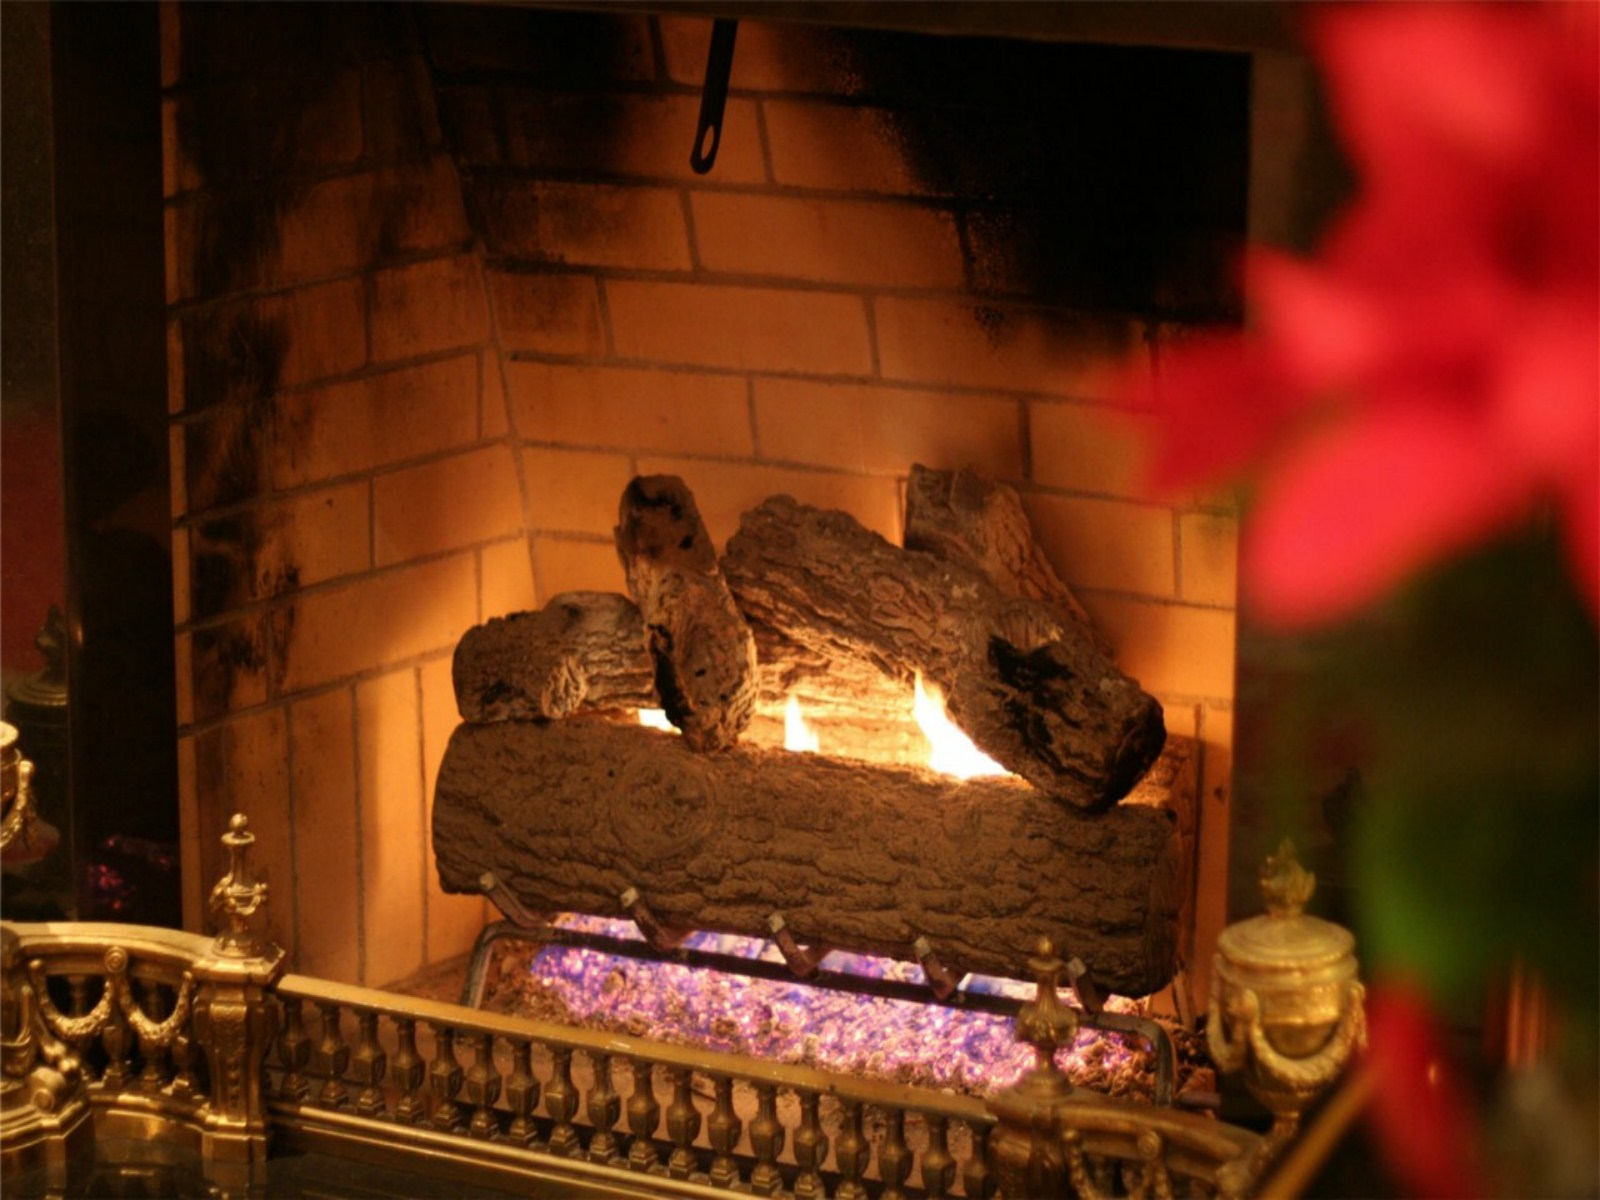 Christmas Fireplace Wallpaper Fireplace Wallpaper Animated 1600x1200